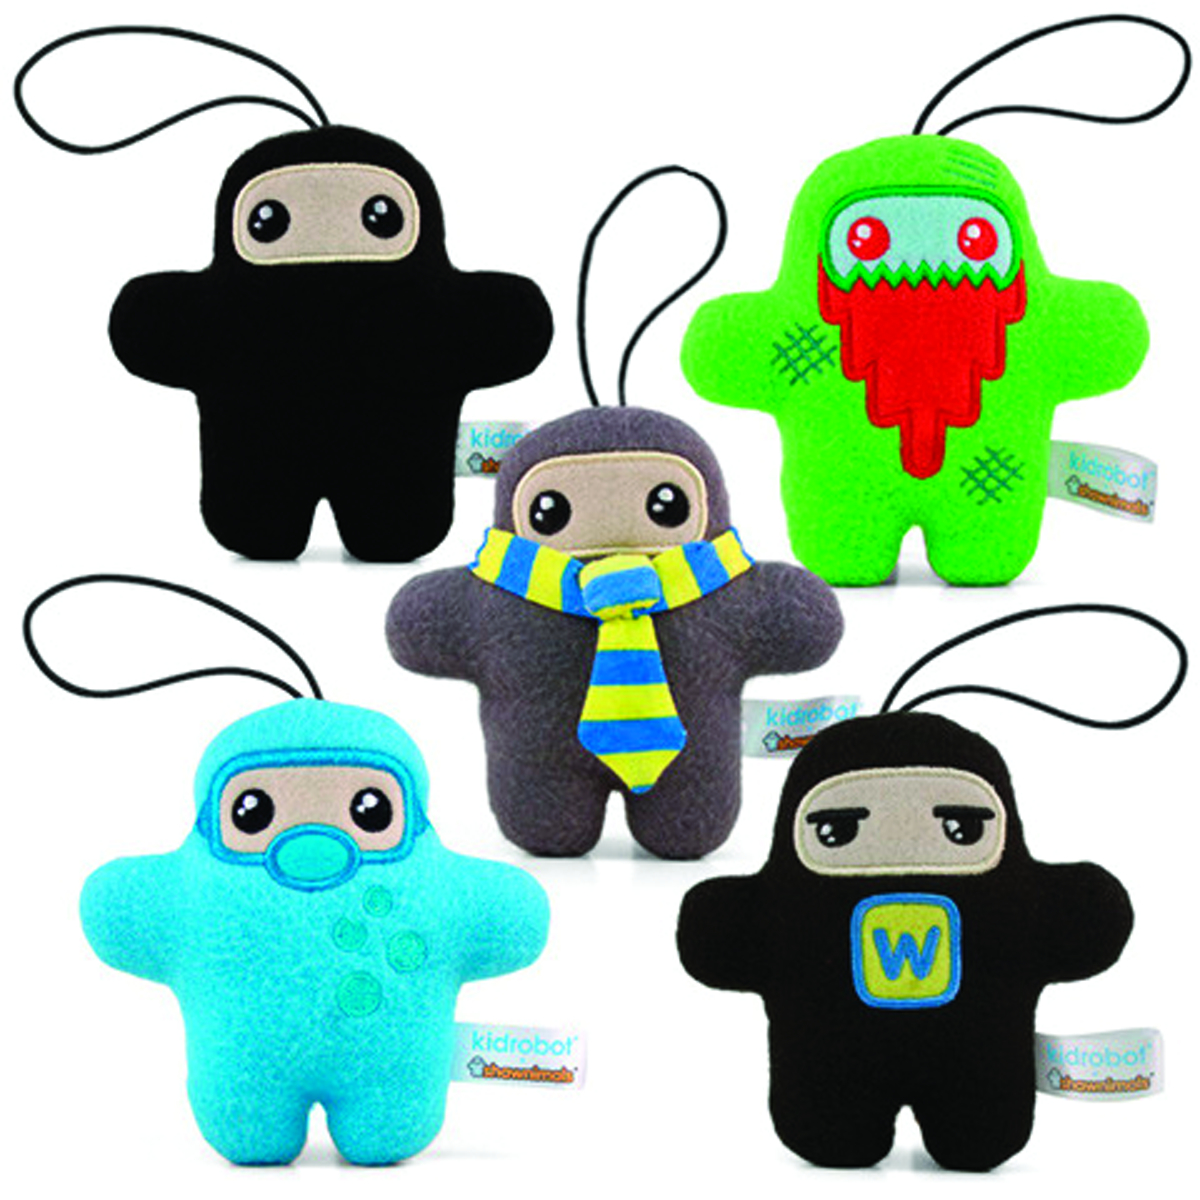 SHAWNIMALS POCKET ZOMBIE NINJA 4.5IN PLUSH